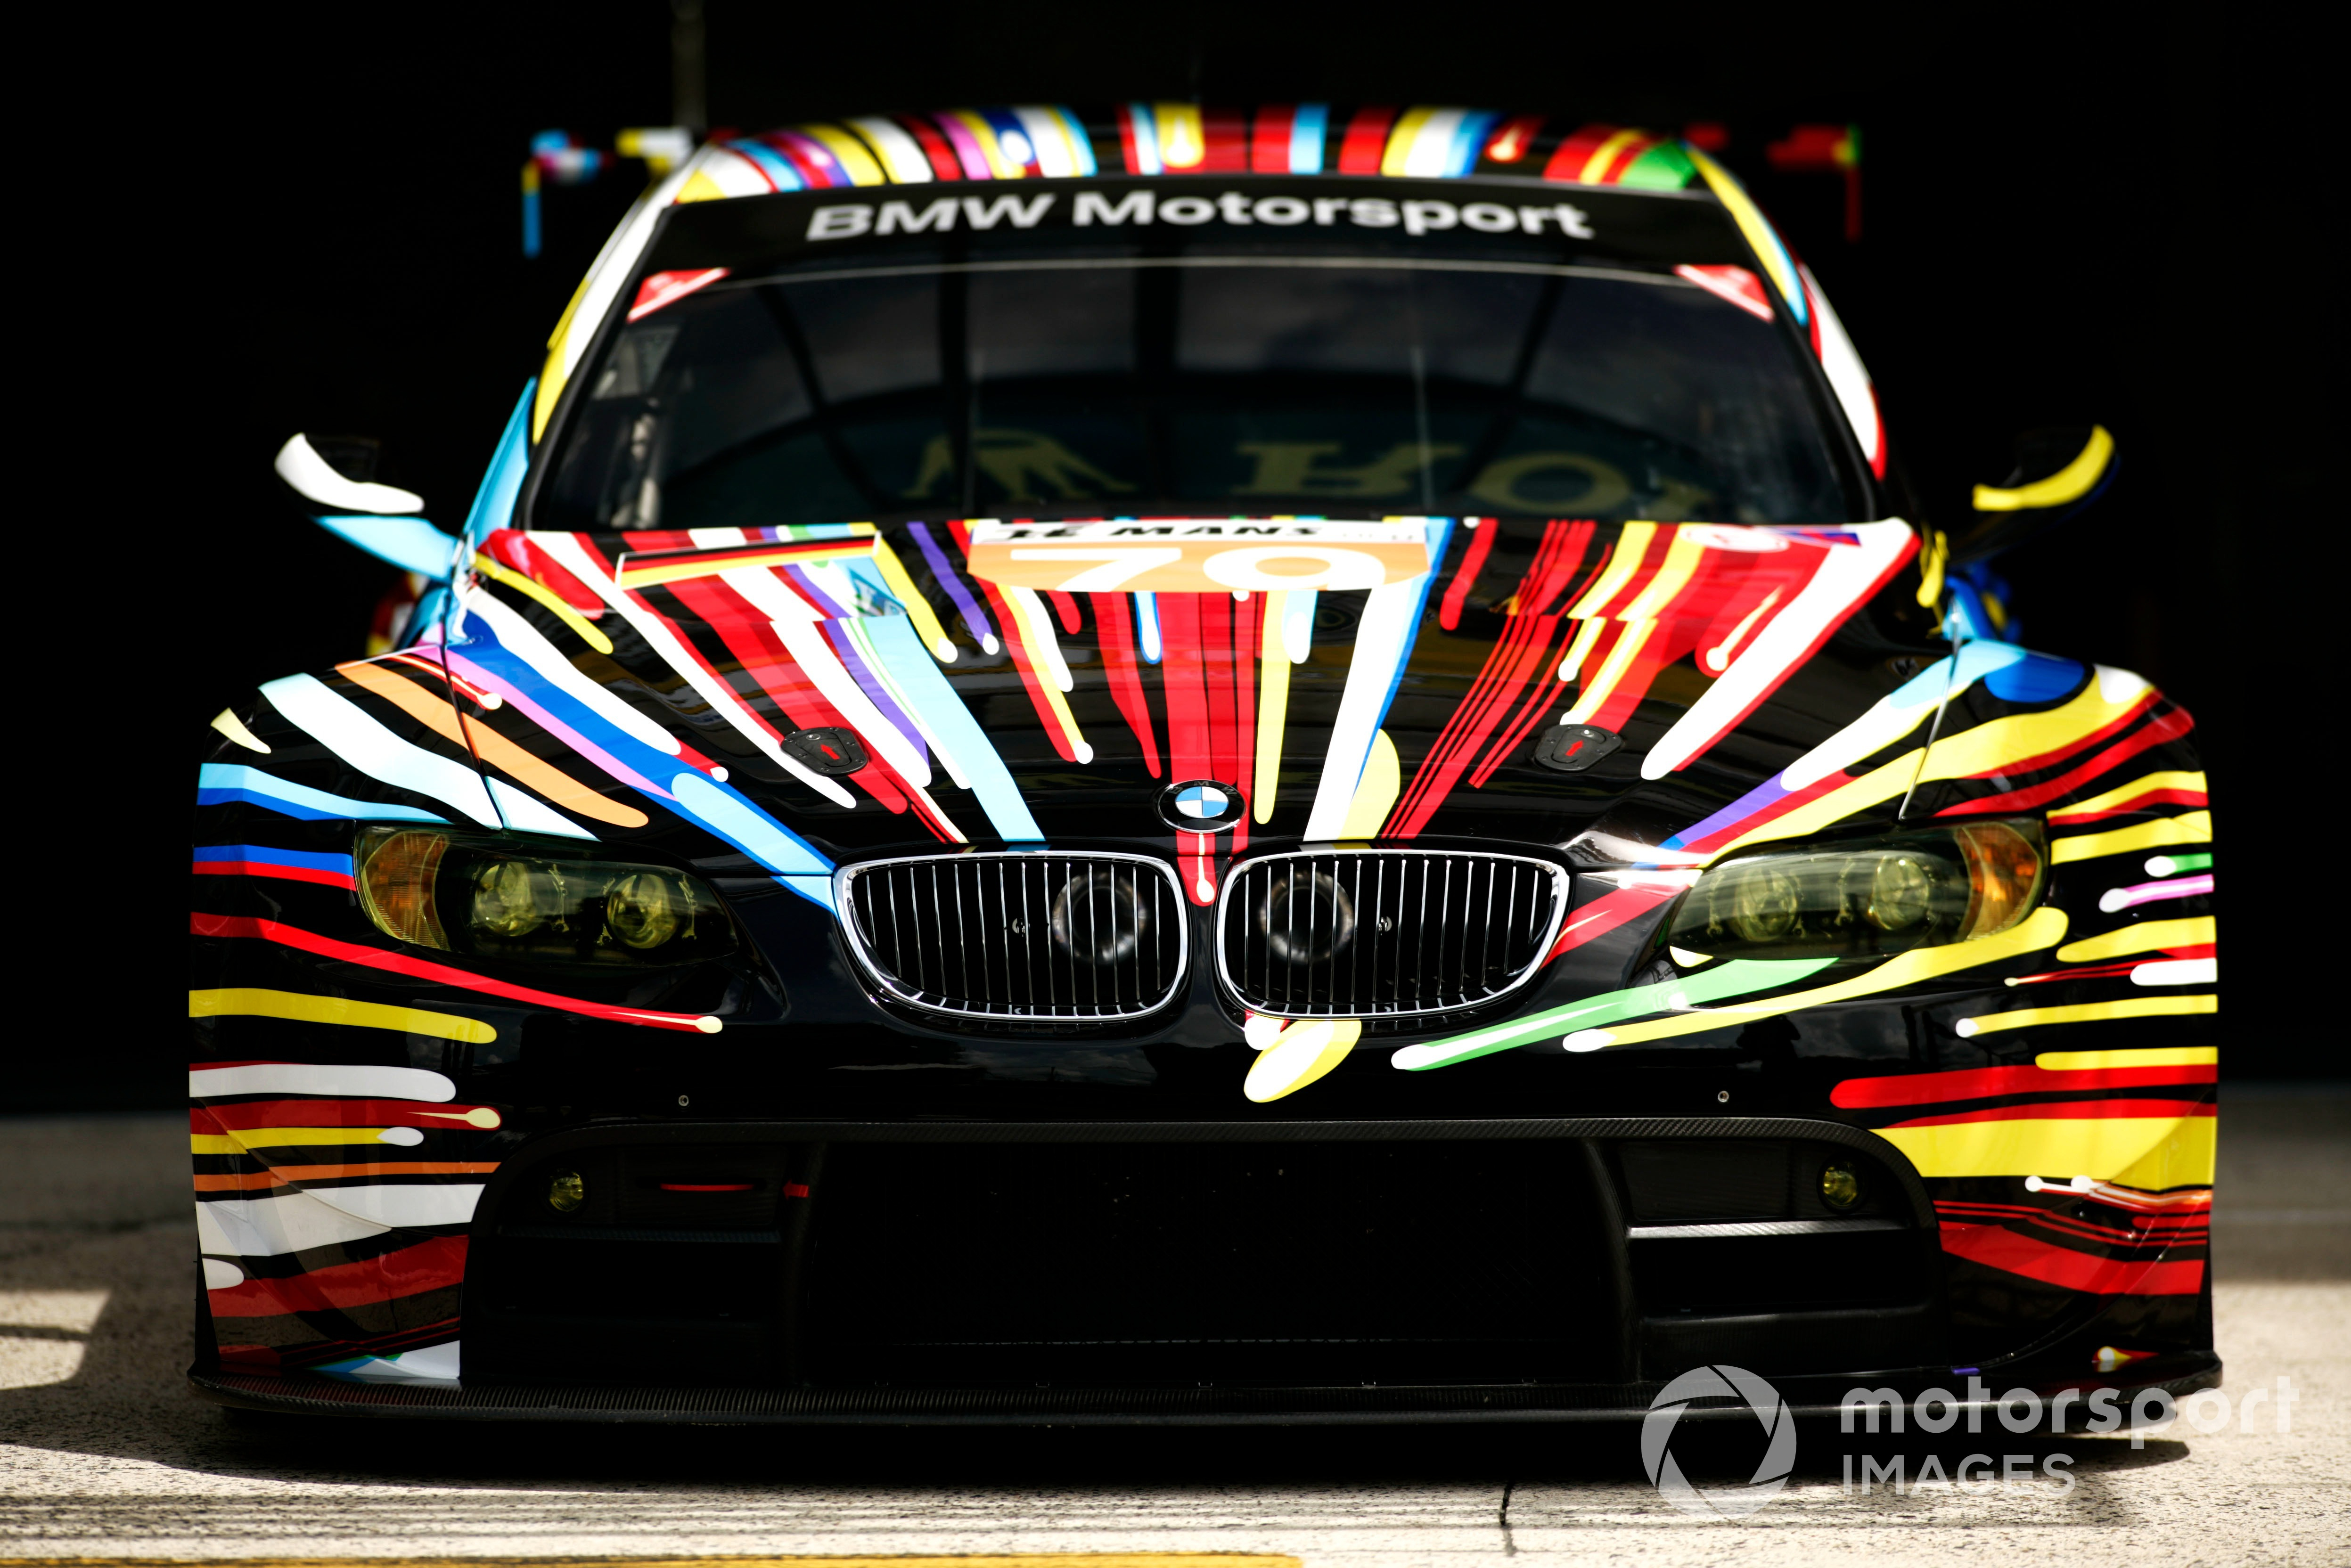 The car of Andy Priaulx / Dirk Muller / Dirk Werner, BMW Motorsport, #79 BMW M3 at the 2010 Le Mans 24 Hours